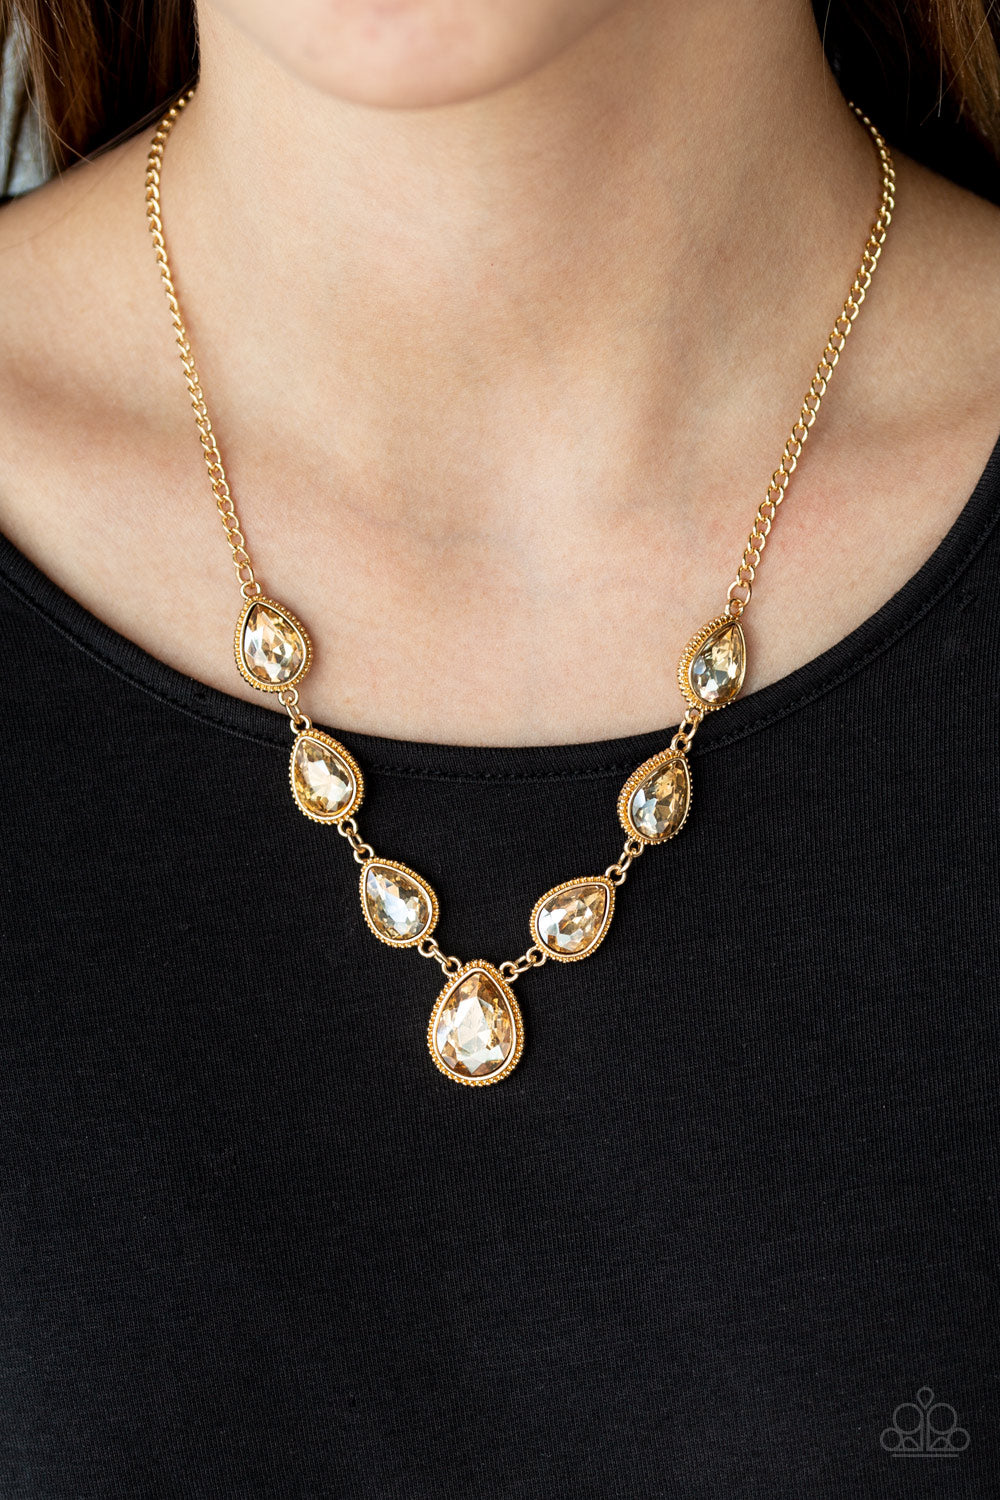 Paparazzi Accessories Socialite Social - Gold Necklaces - Lady T Accessories